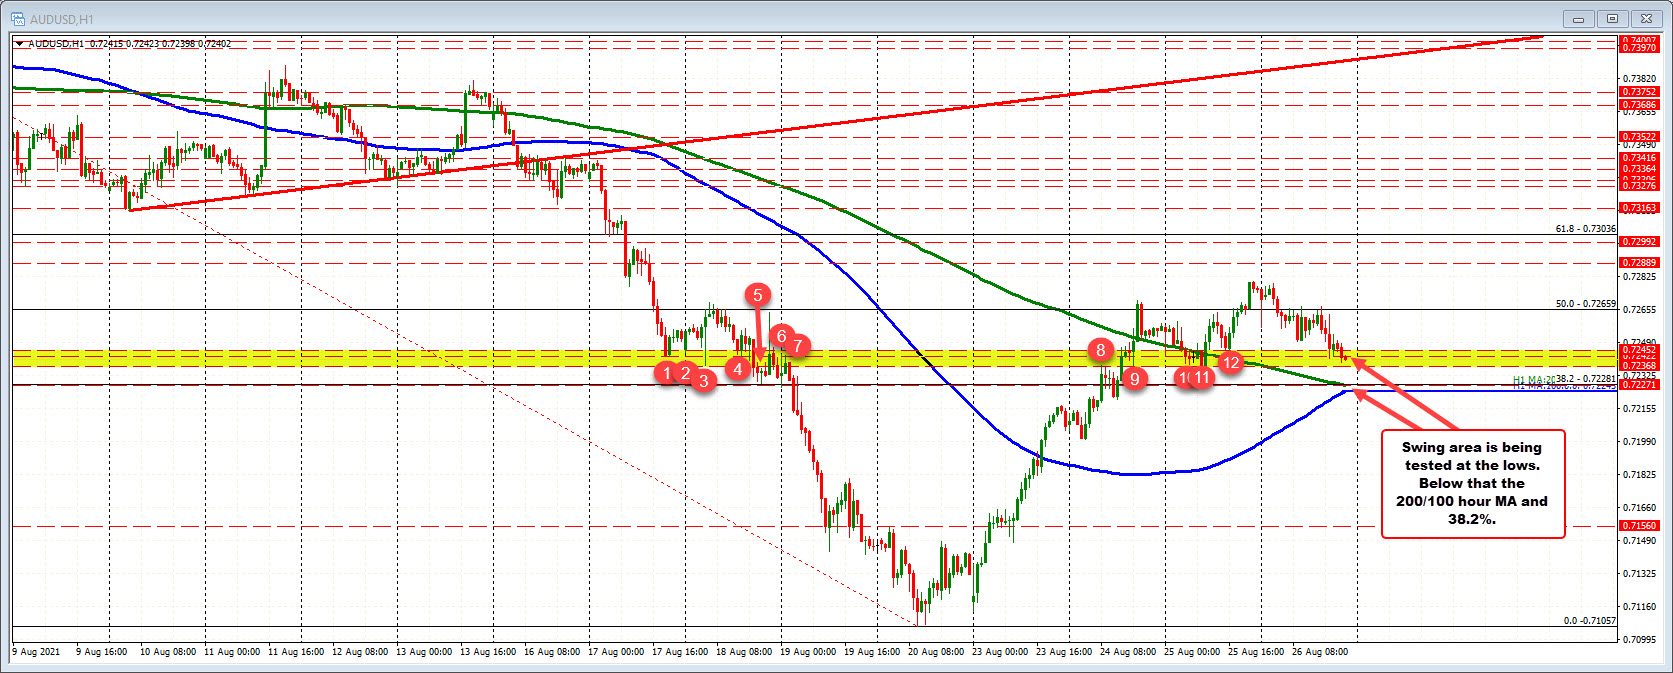 AUDUSD moves to a new session low